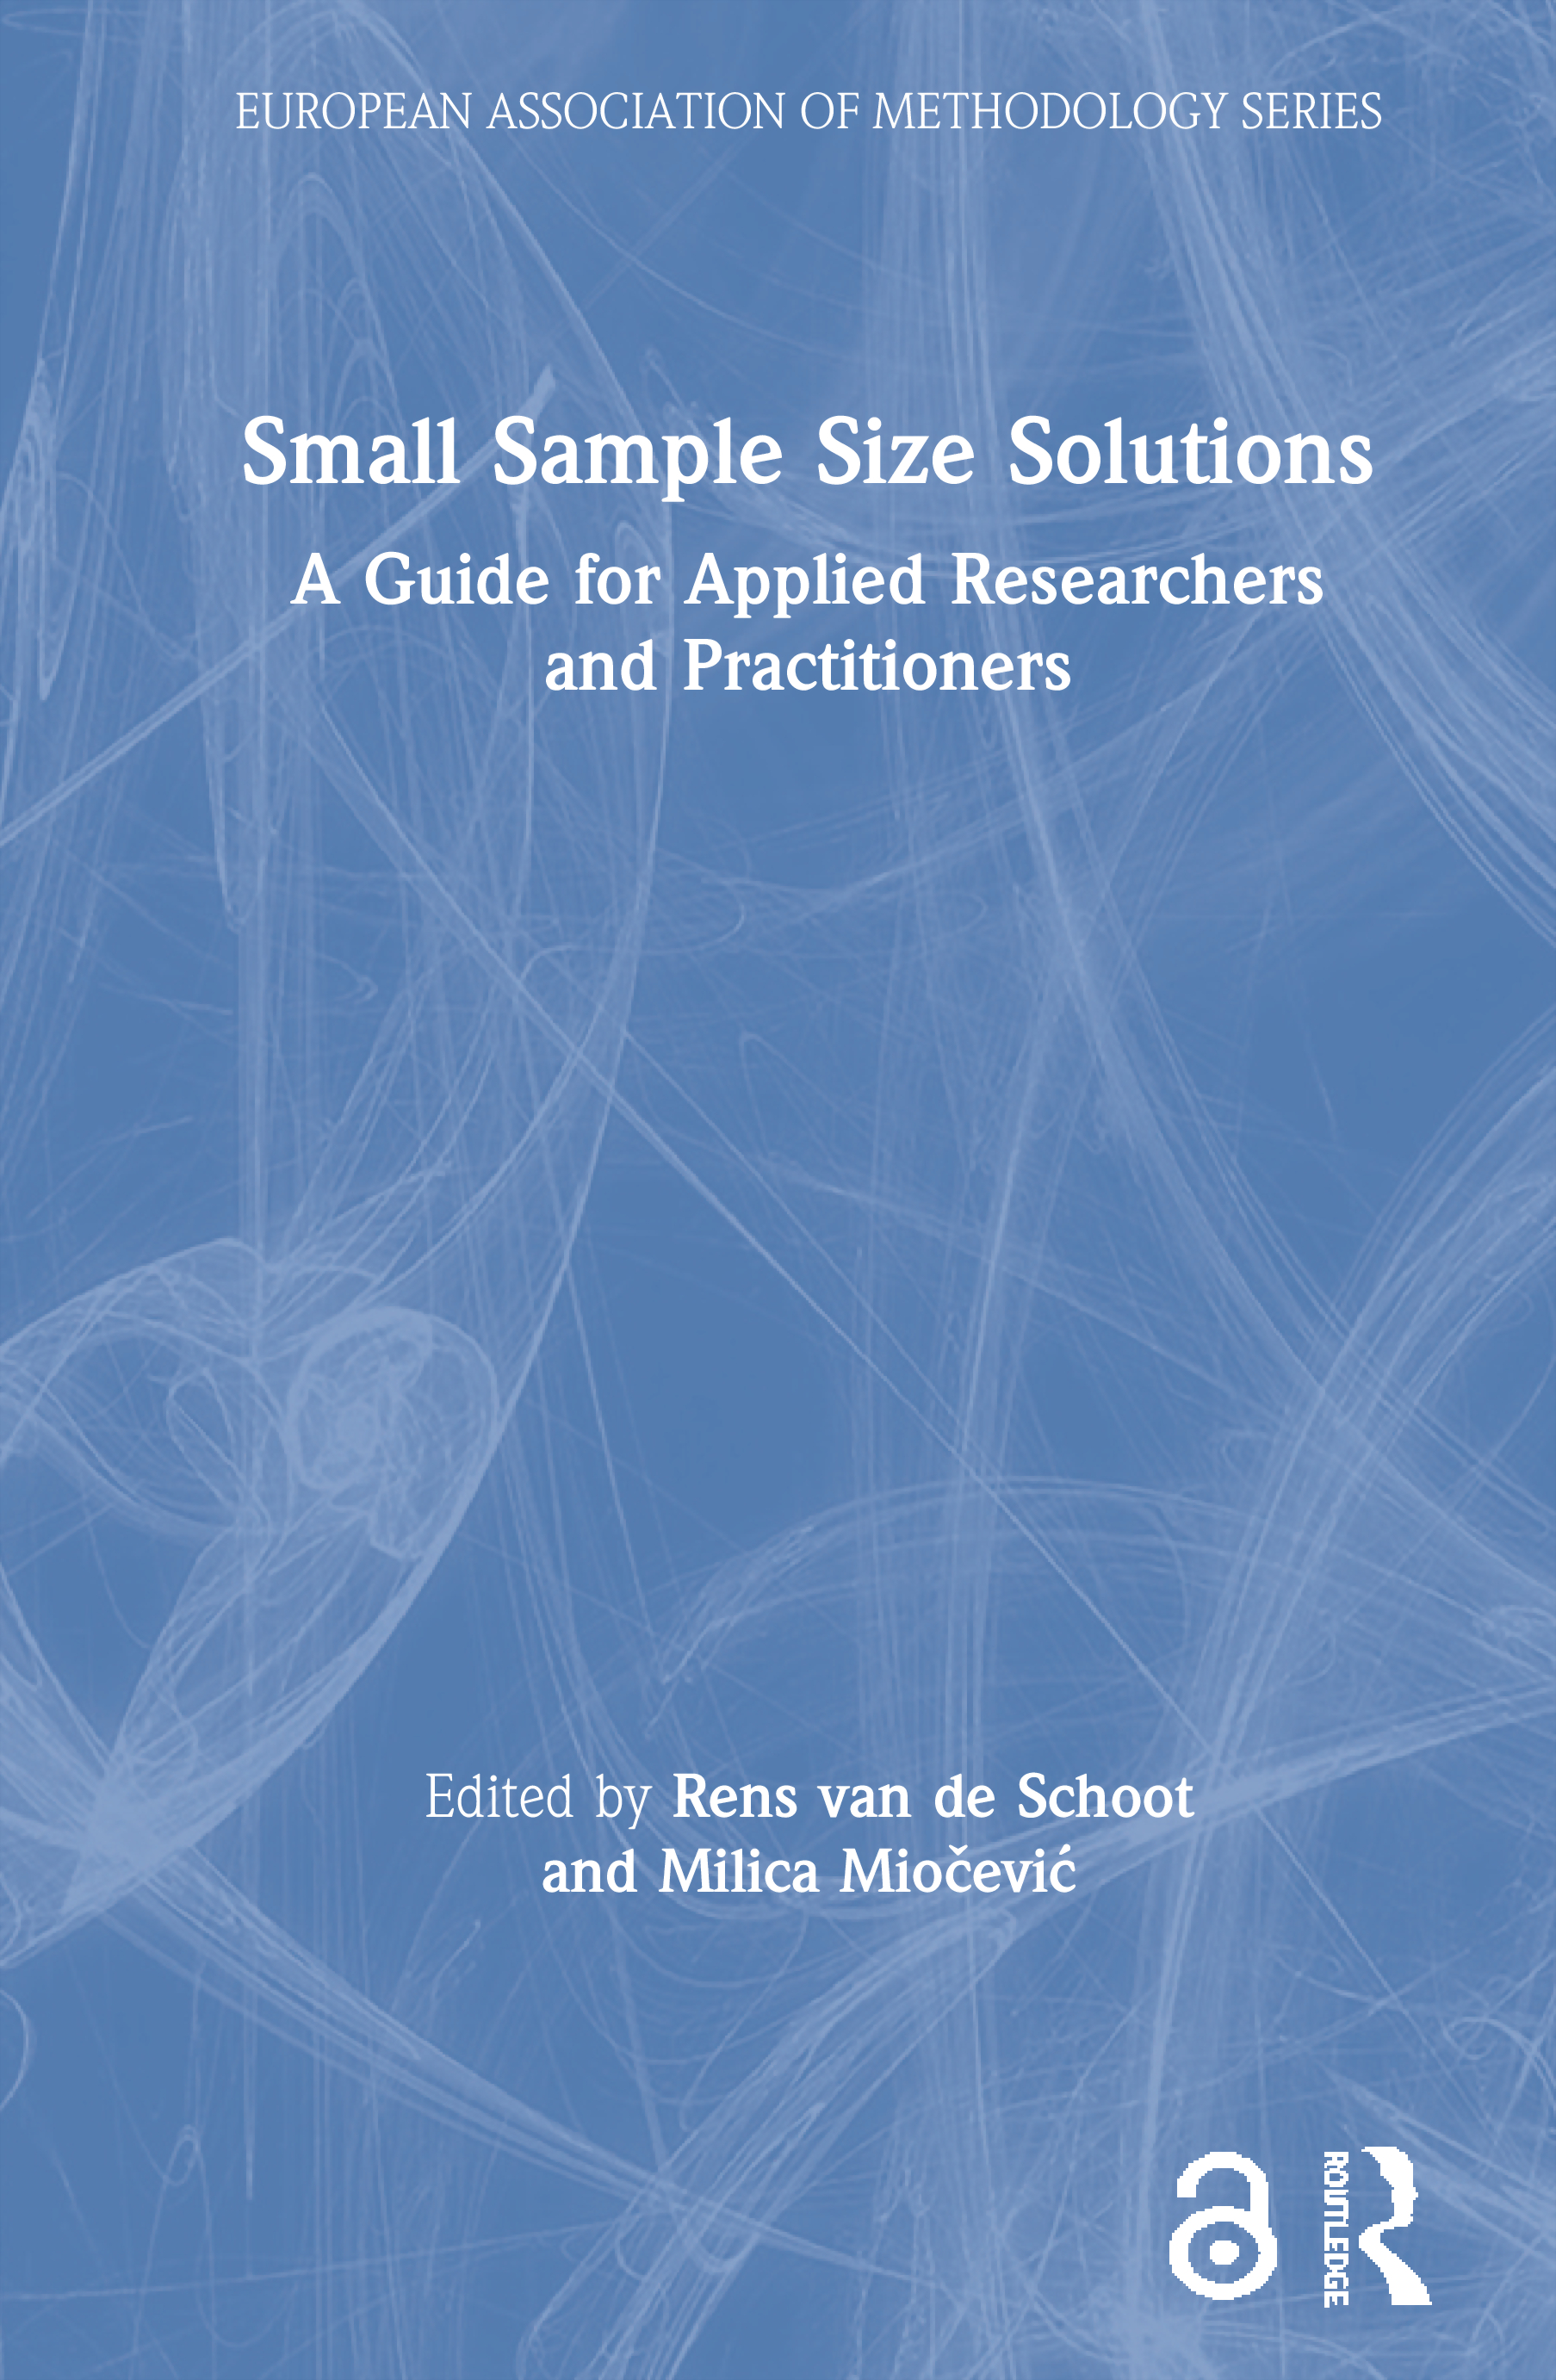 Small Sample Size Solutions (Open Access): A Guide for Applied Researchers and Practitioners book cover